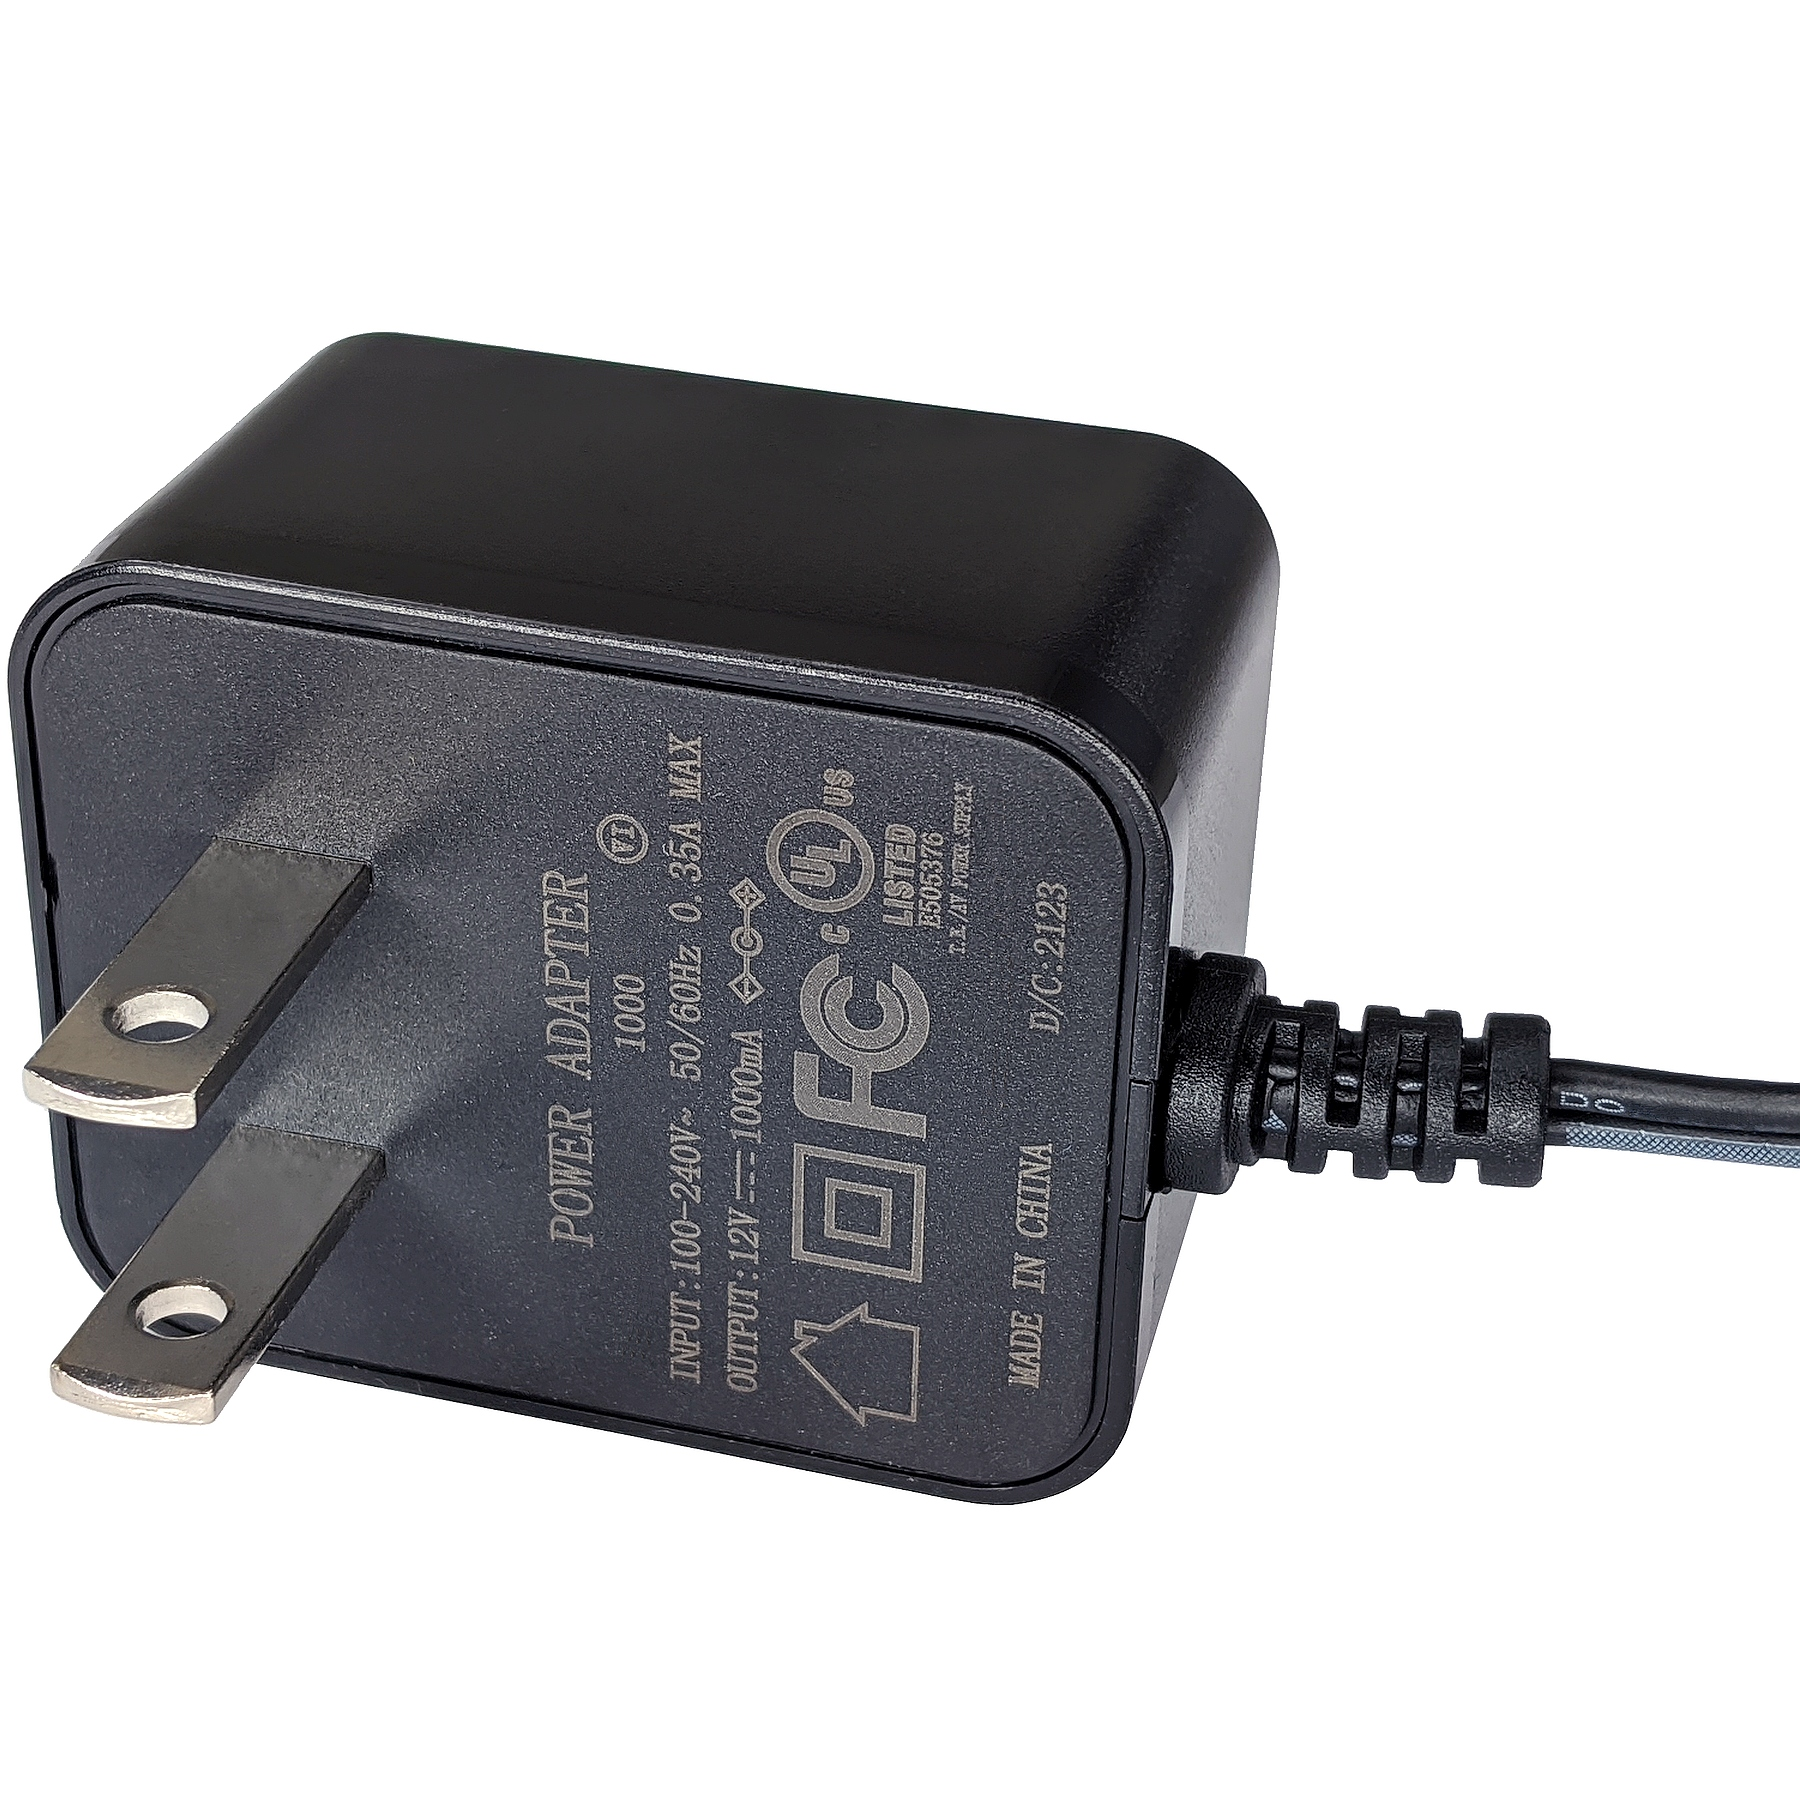 12V DC 1000mA Output Power Adapter (100-240V AC Input, 2.1mm ID / 5.5mm OD)